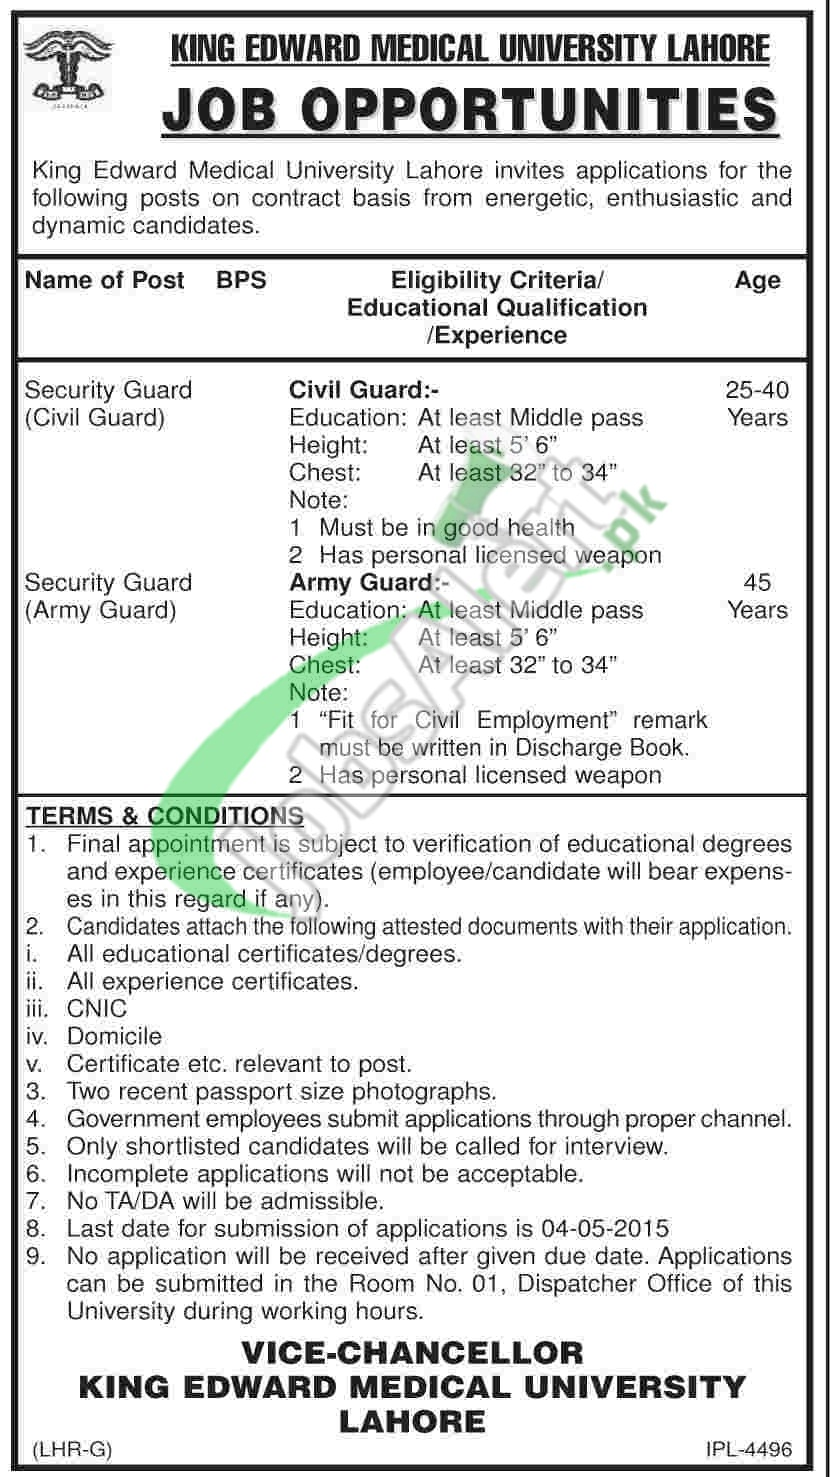 Jobs in King Edward Medical University Lahore